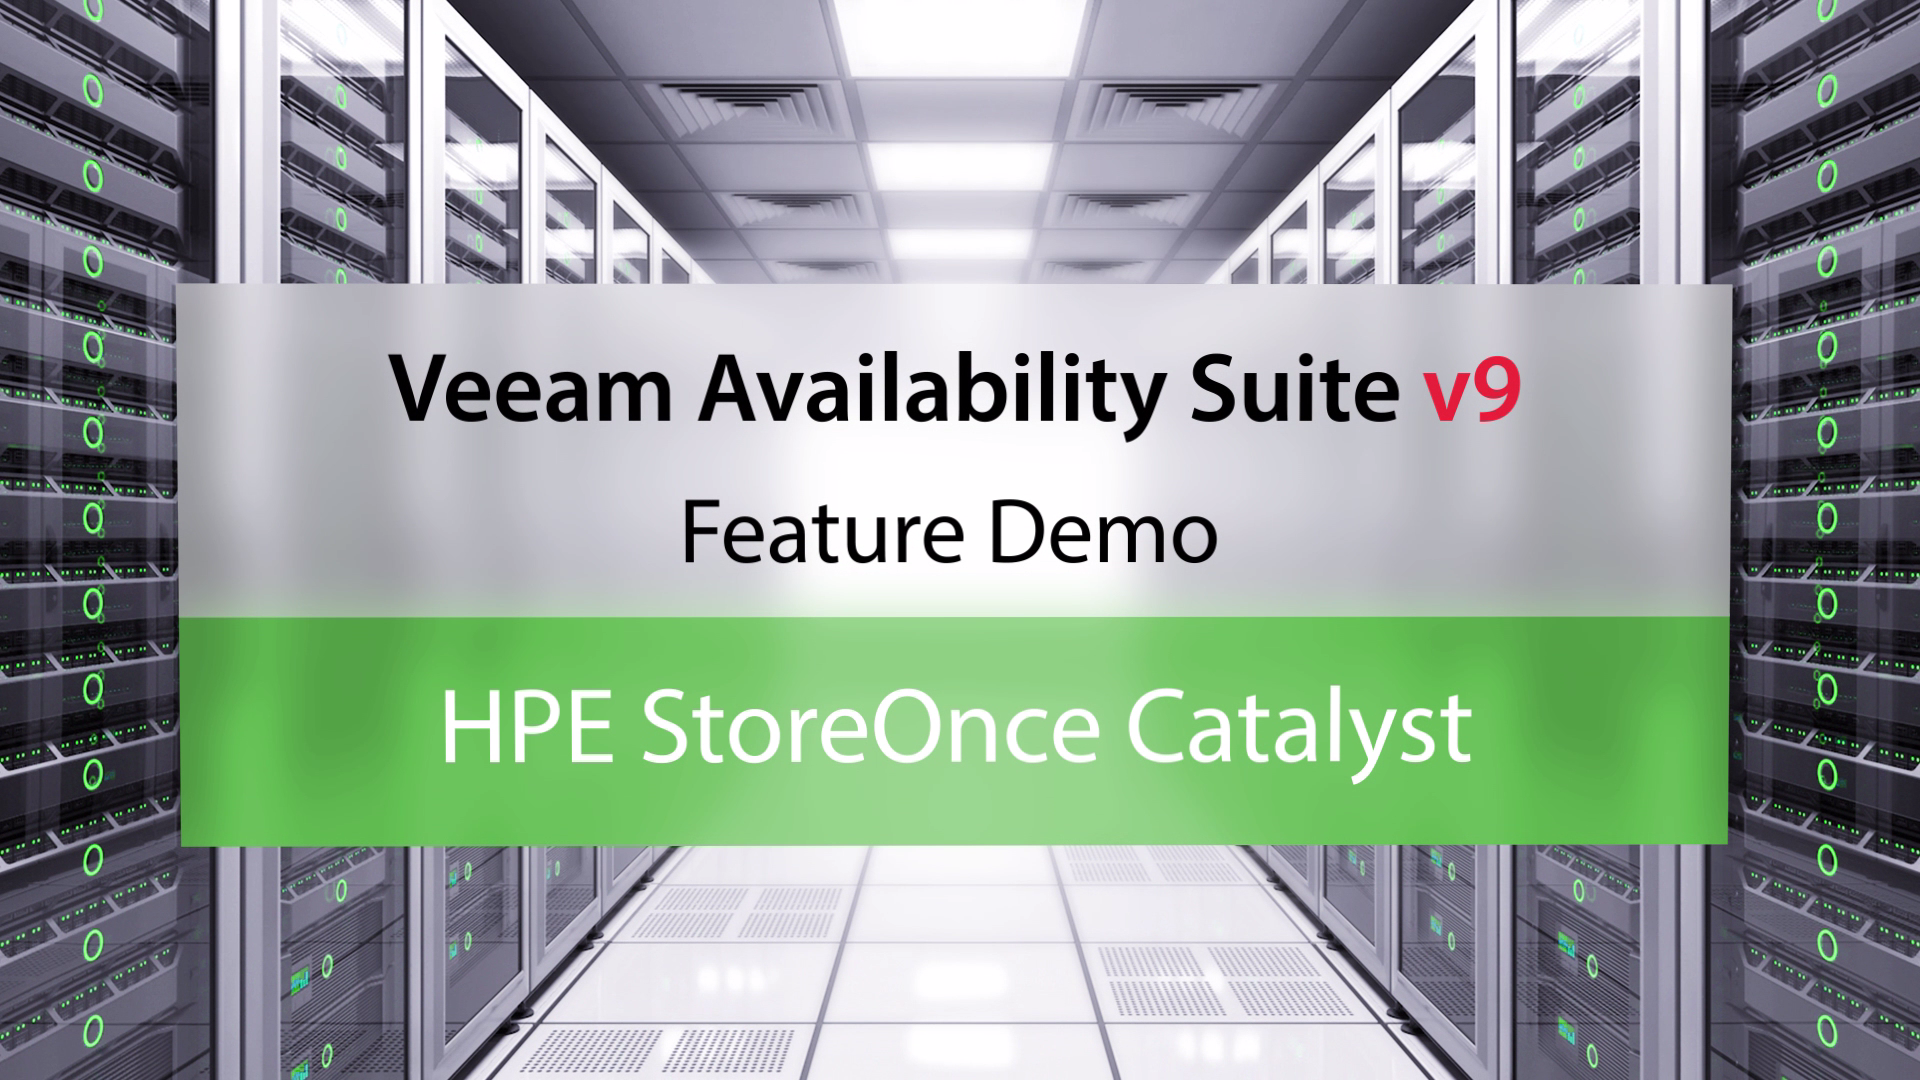 Veeam Availability Suite v9: HPE StoreOnce Catalyst